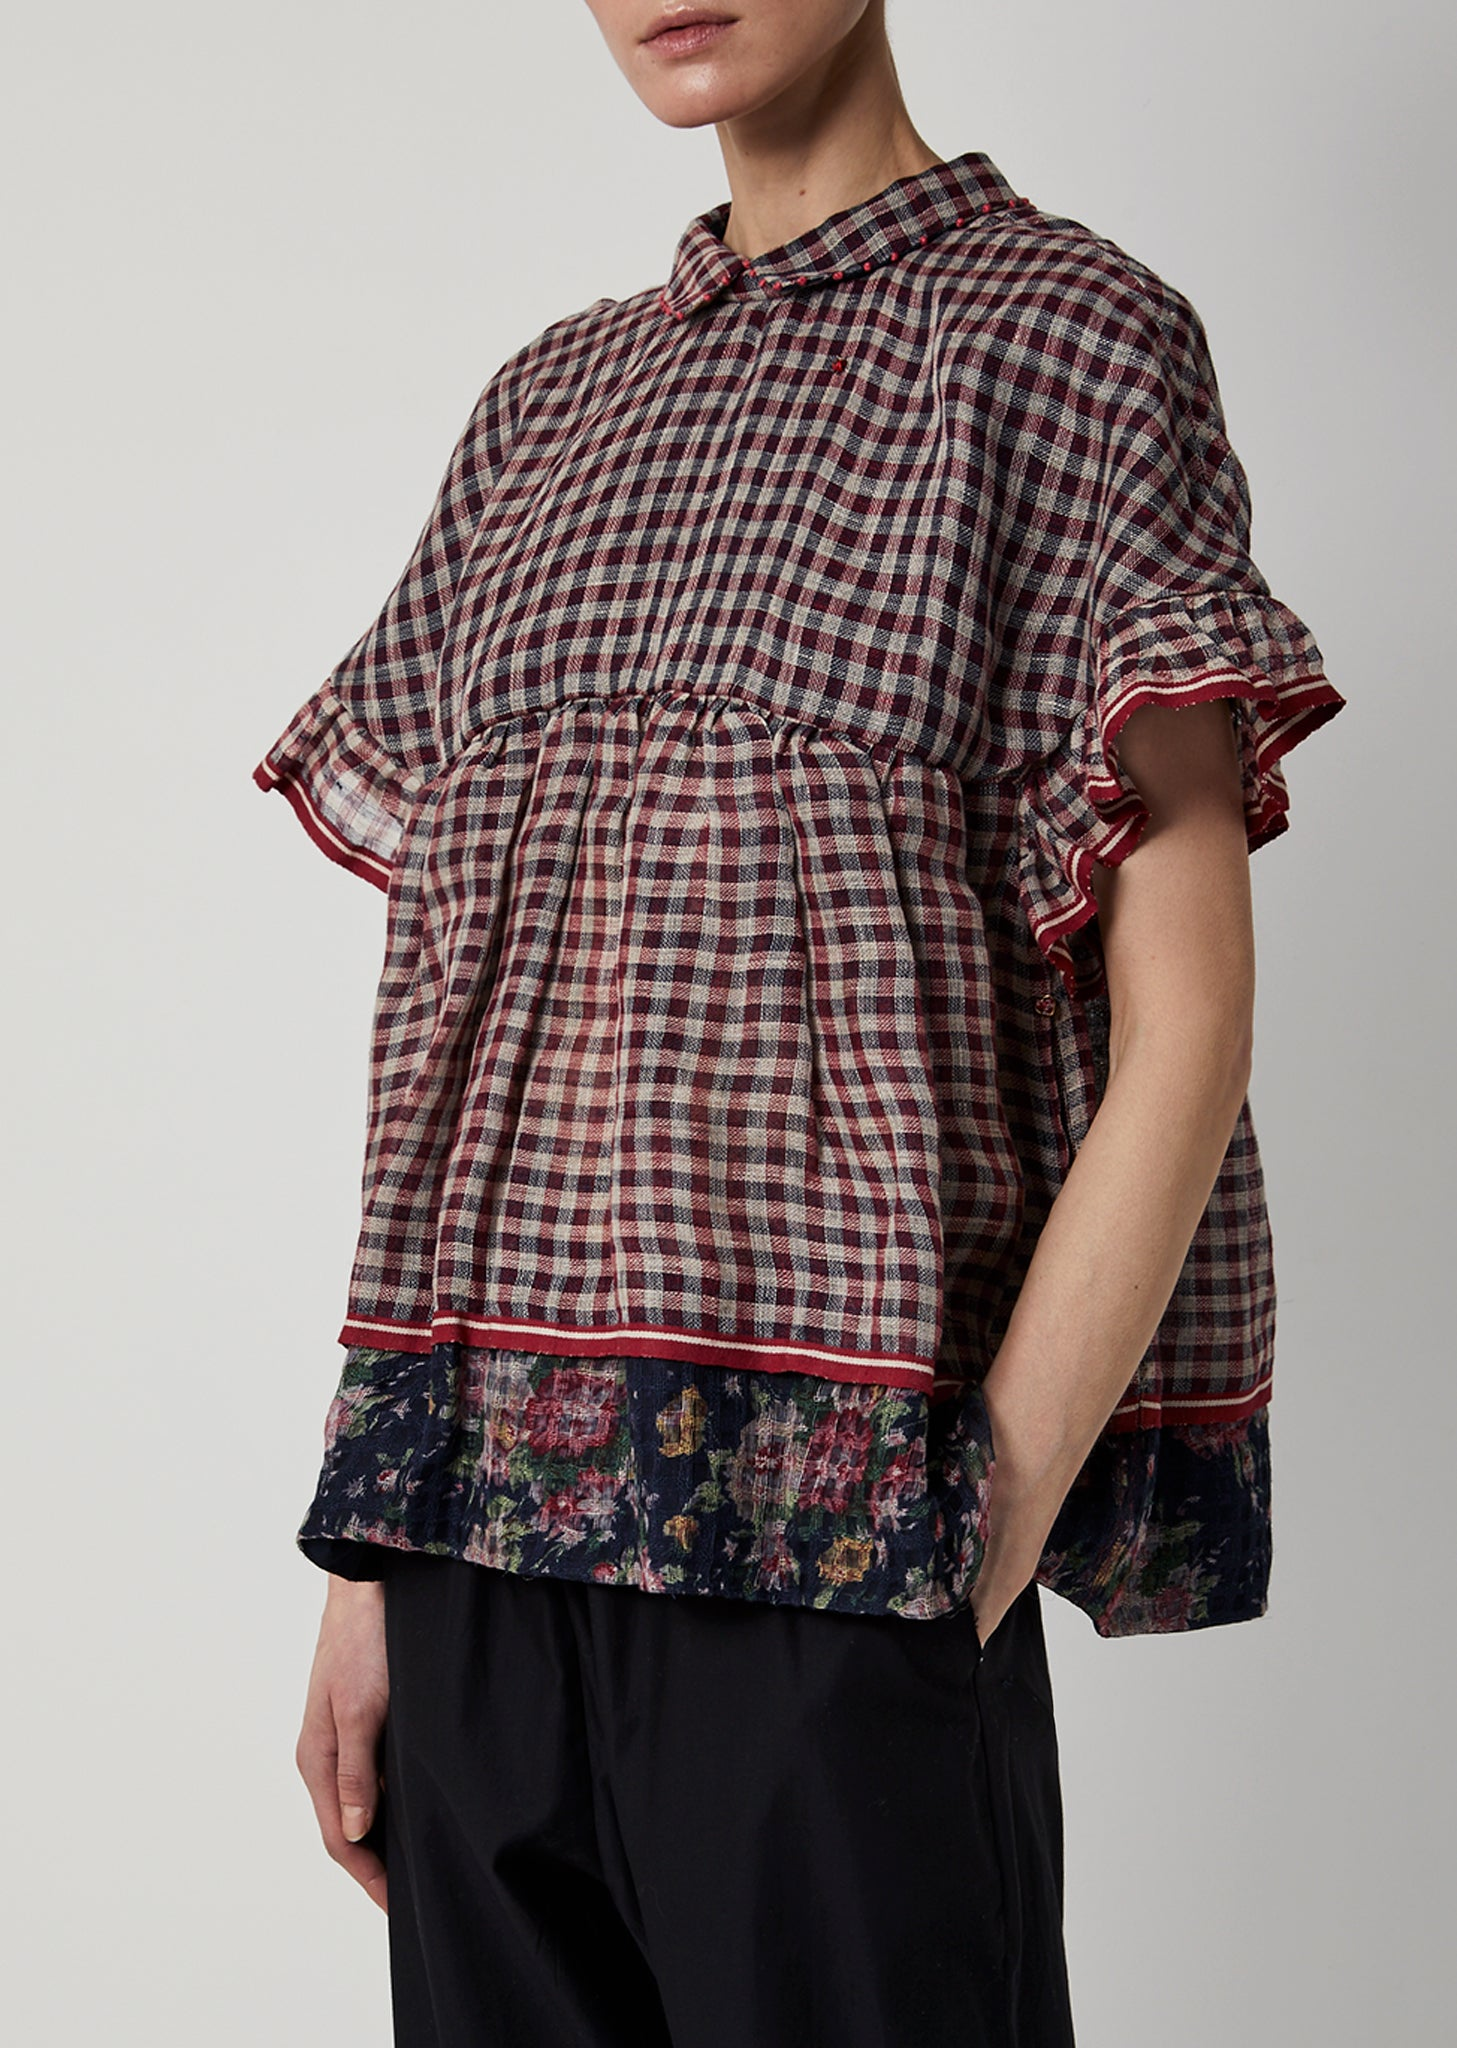 Linen Gingham Floral Print Top